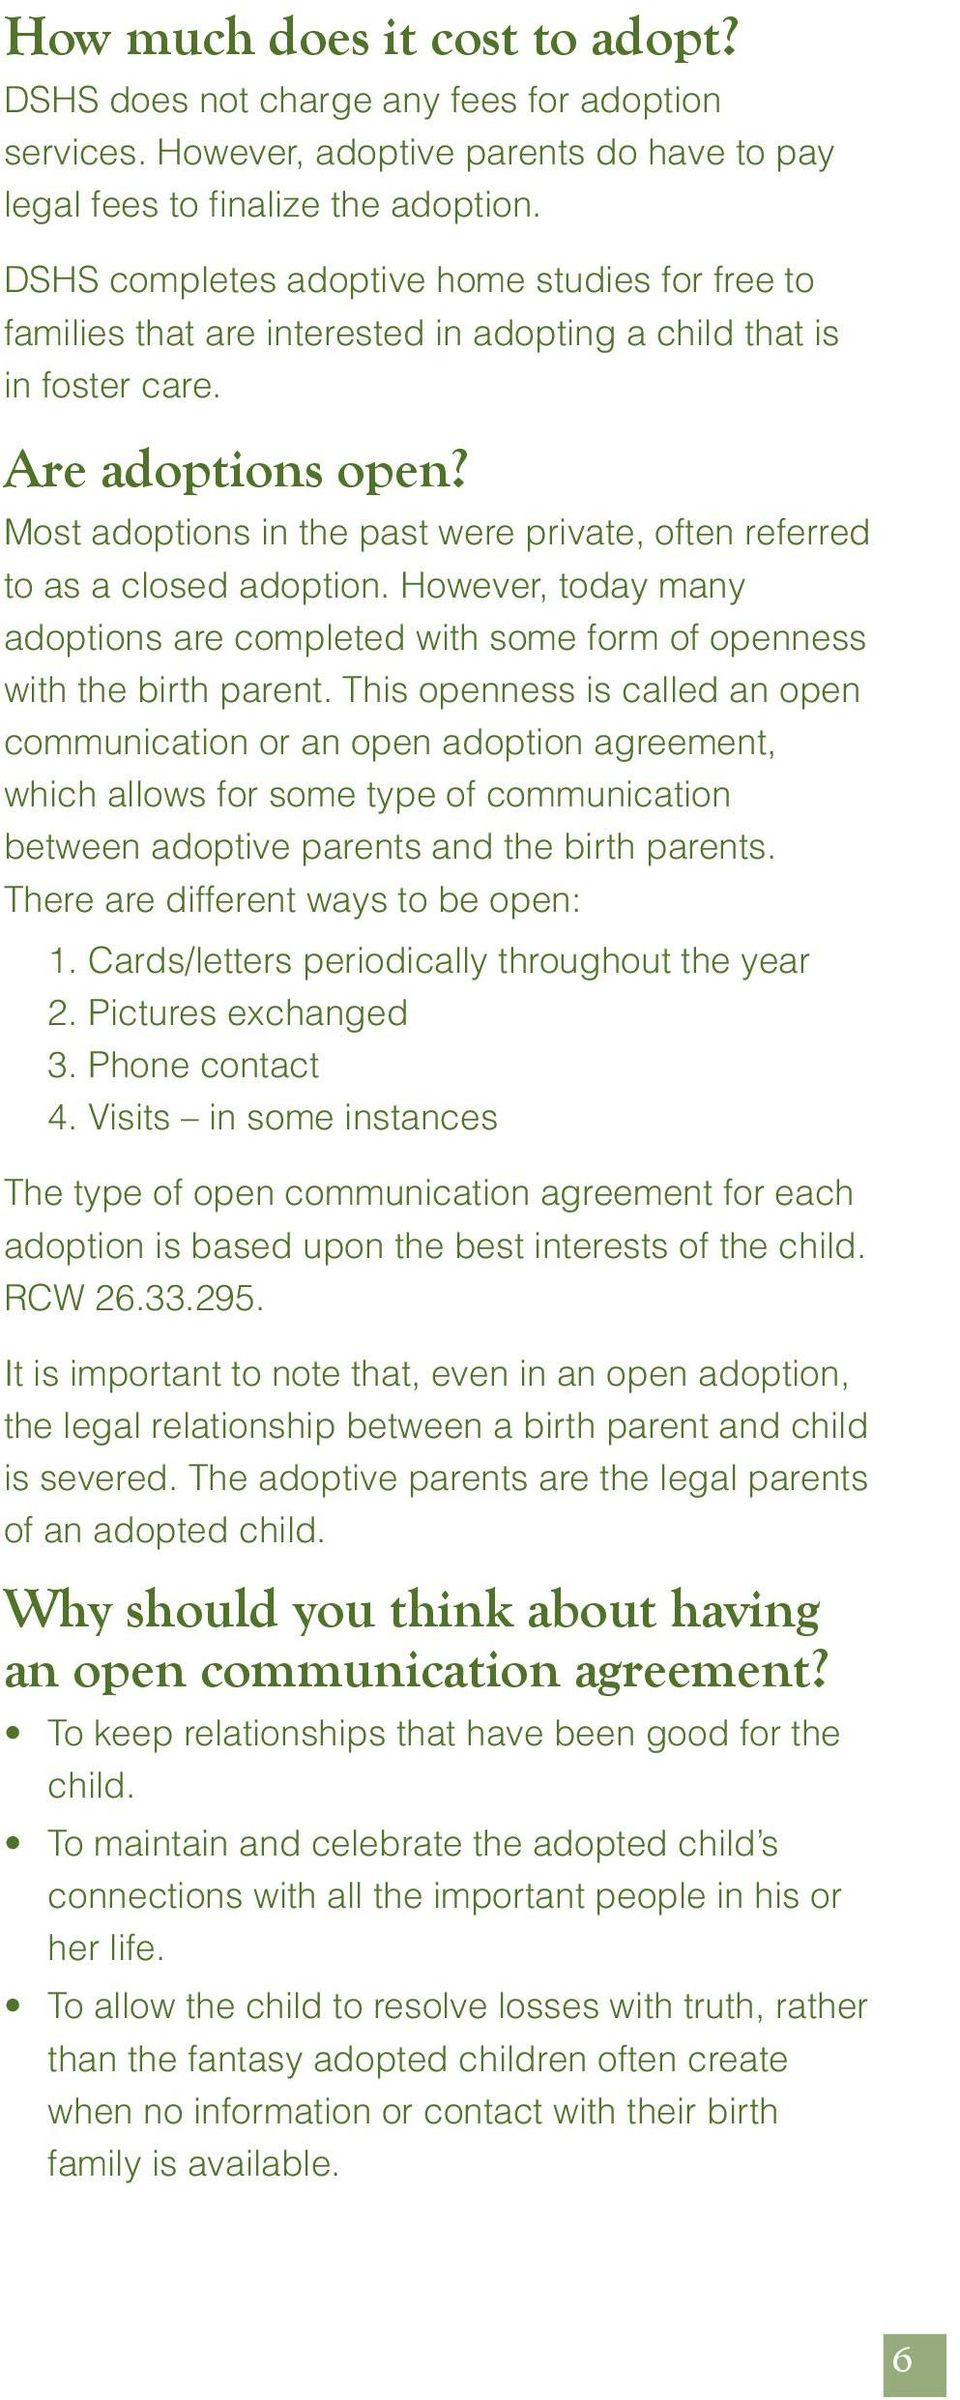 Most adoptions in the past were private, often referred to as a closed adoption. However, today many adoptions are completed with some form of openness with the birth parent.